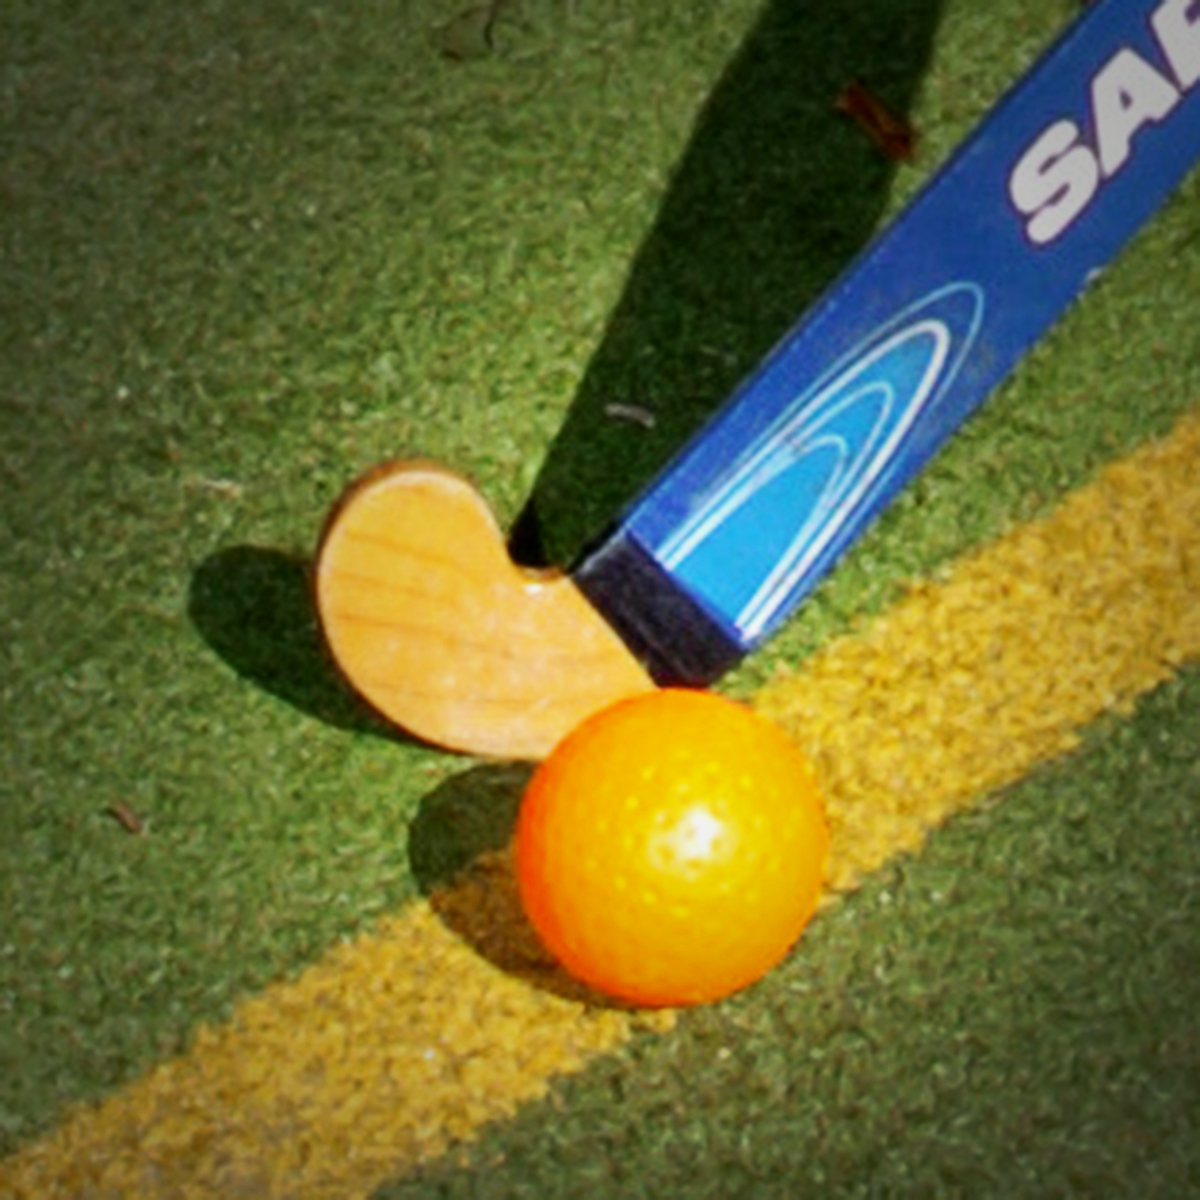 HOCKEY: Witney in stalemate